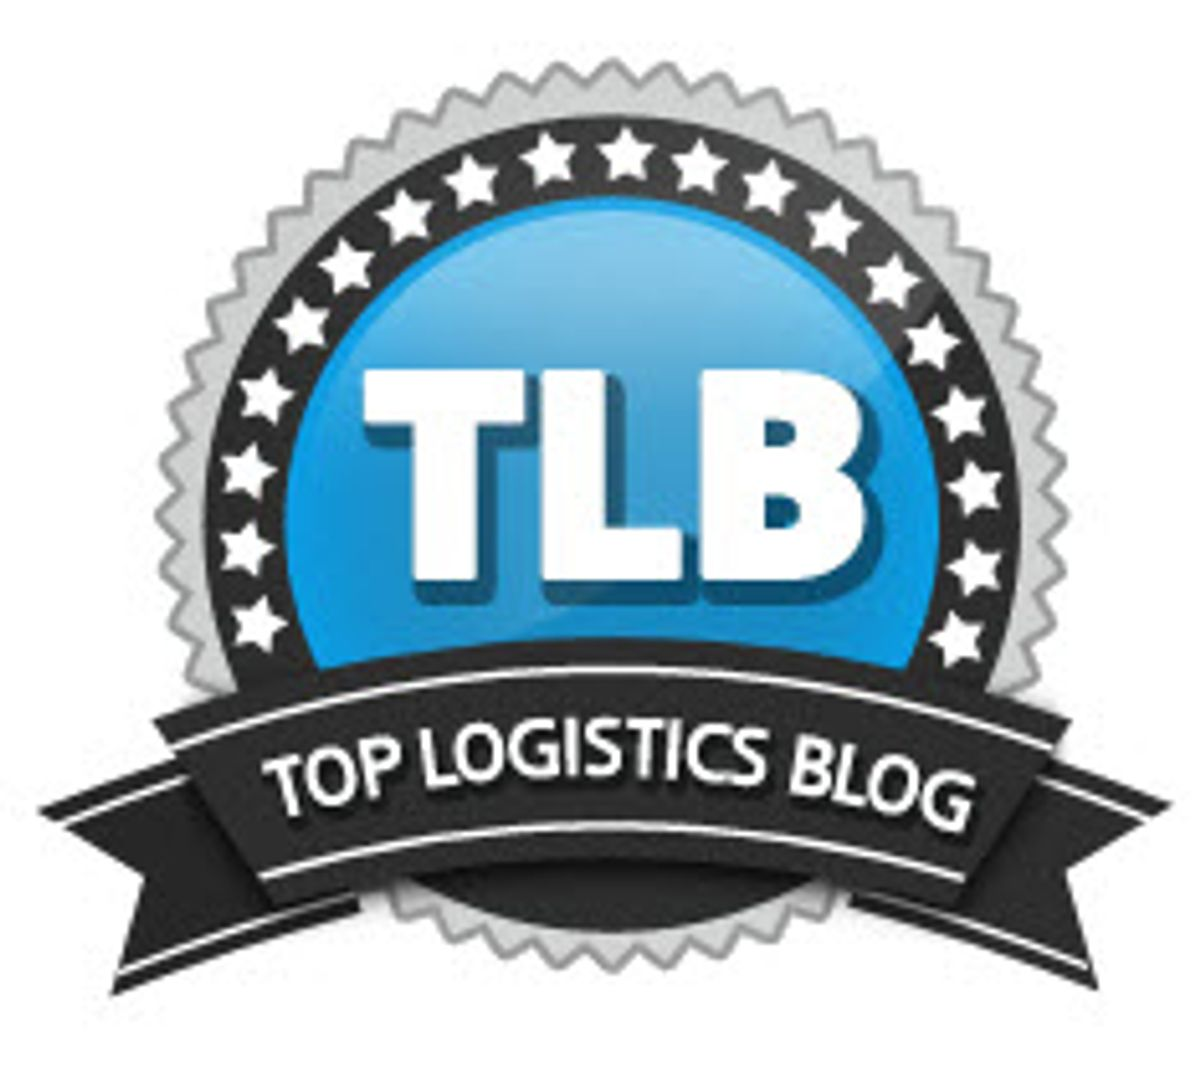 Move Ahead Named a Top Logistics Blog